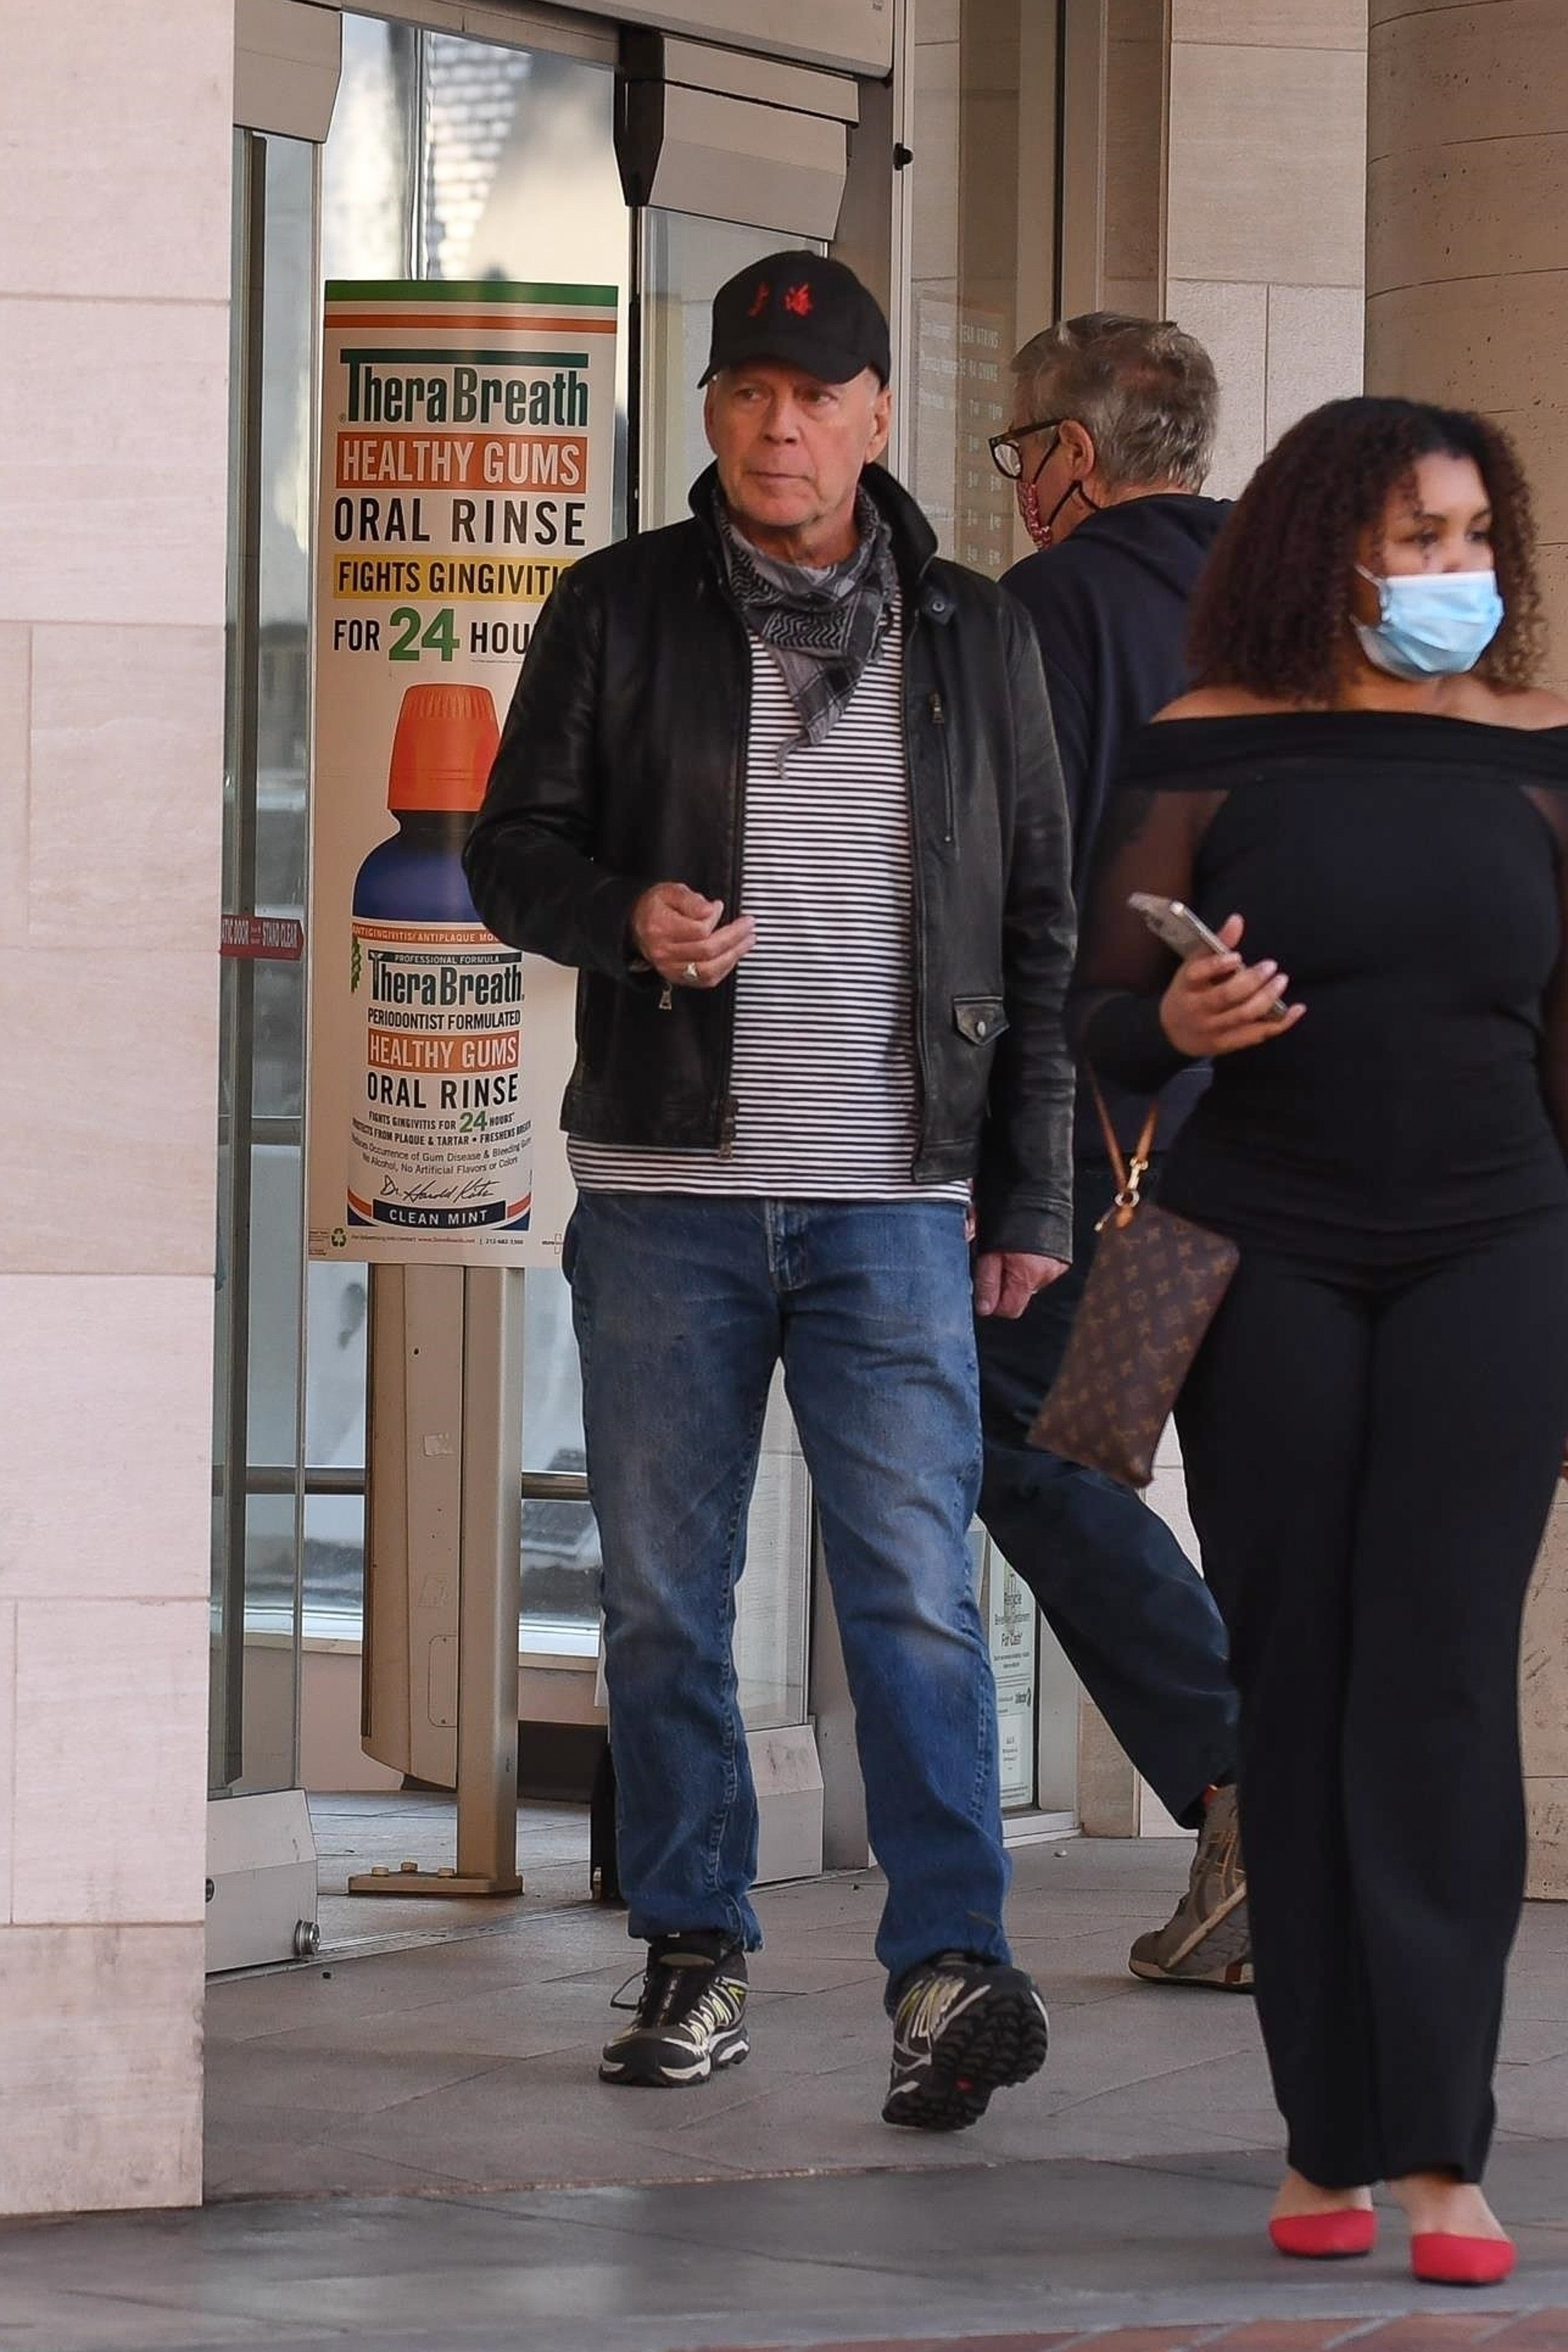 Bruce Willis is spotted walking around outside without wearing a mask while other people wear their masks